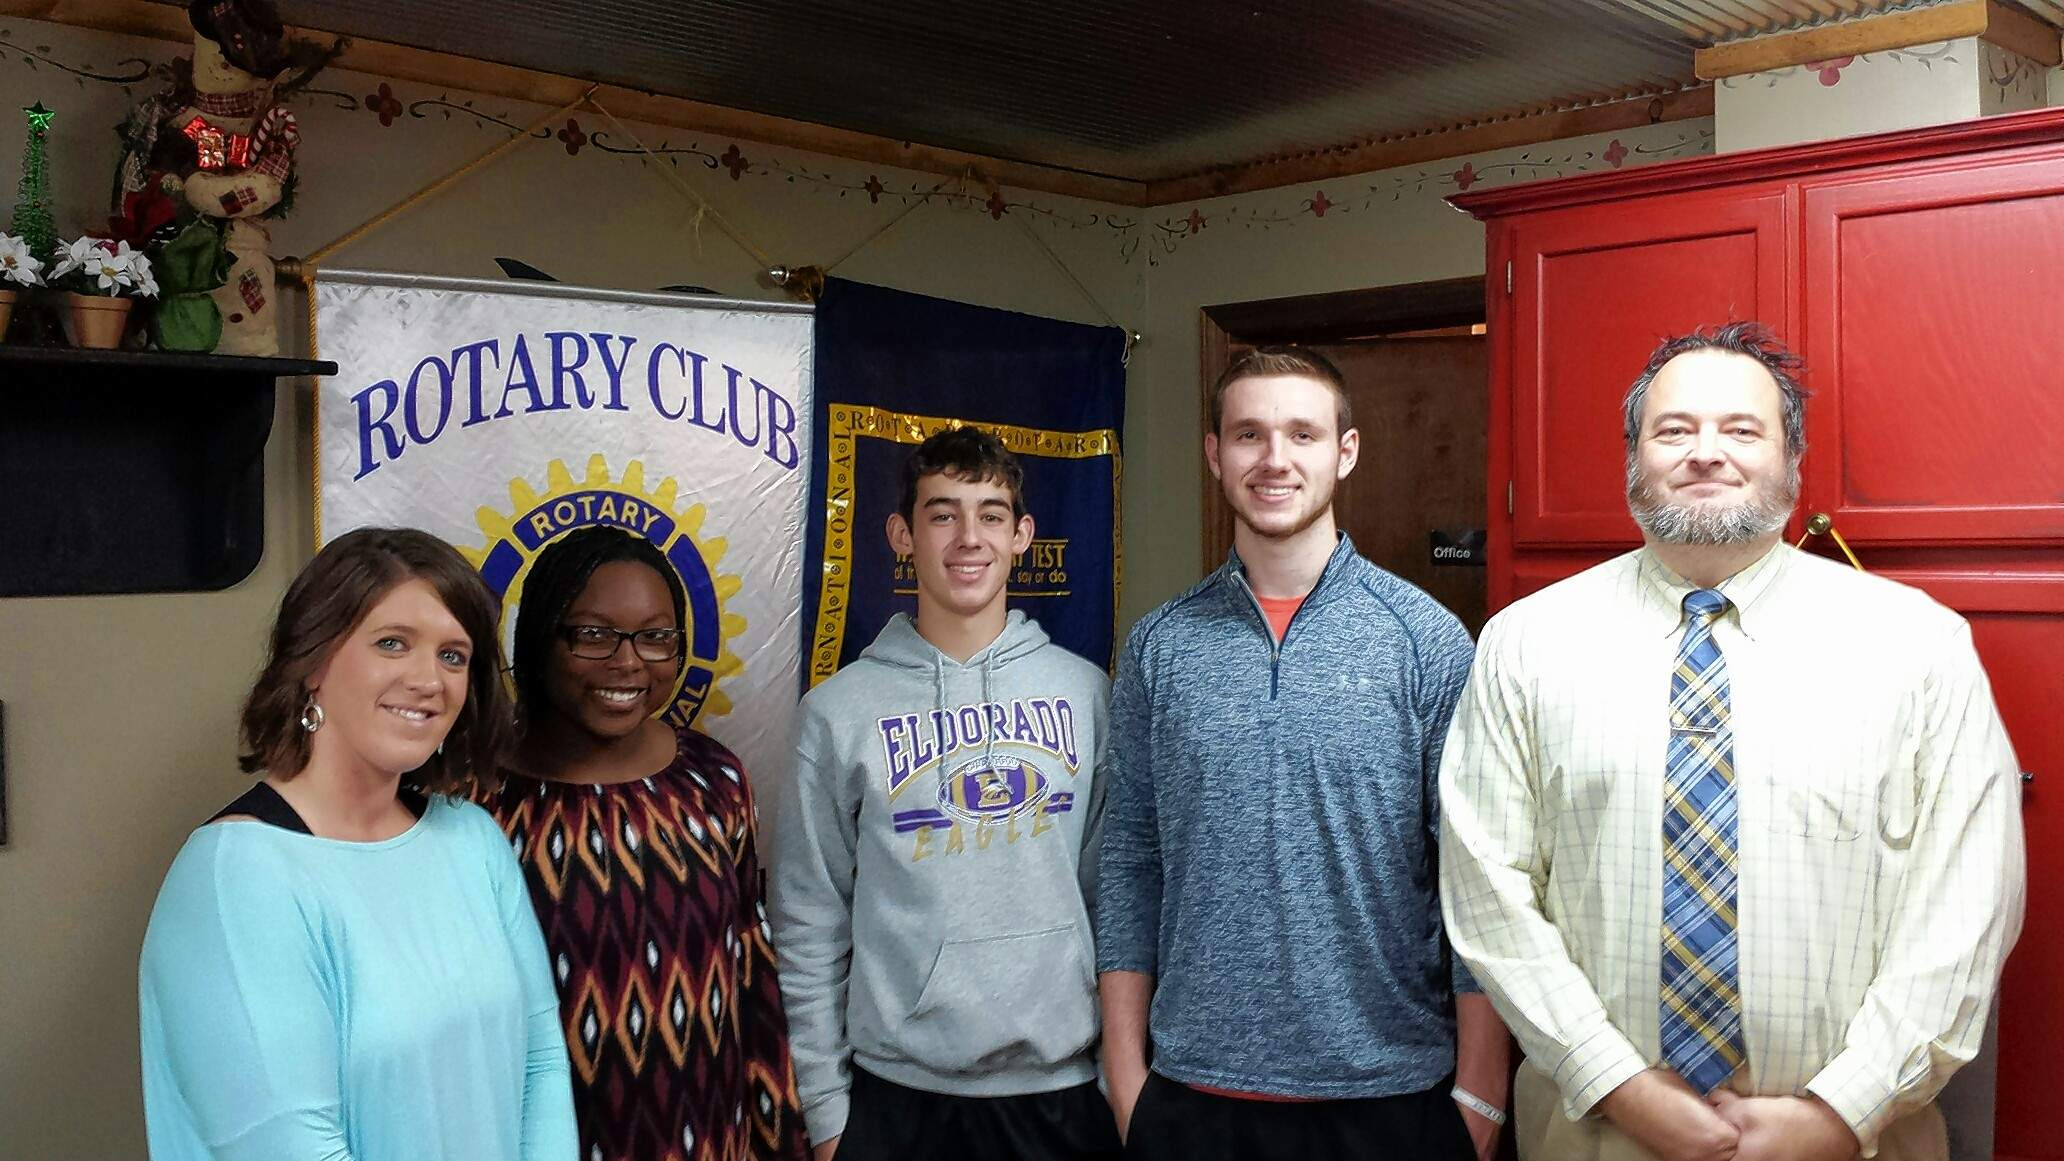 The Eldorado Rotary Club heard from three Eldorado High School athletes with ambitious post-graduation plans. From left, Rotary President Caleigh Bruce, EHS students Takiya Britton, Kale Oglesby and Braden Attebery, and EHS Superintendent and Principal Ryan Hobbs. Britton plans to pursue political science and become a defense attorney. Oglesby plans to declare a pre-medicine major. Attebery said he plans to become a chiropractor.